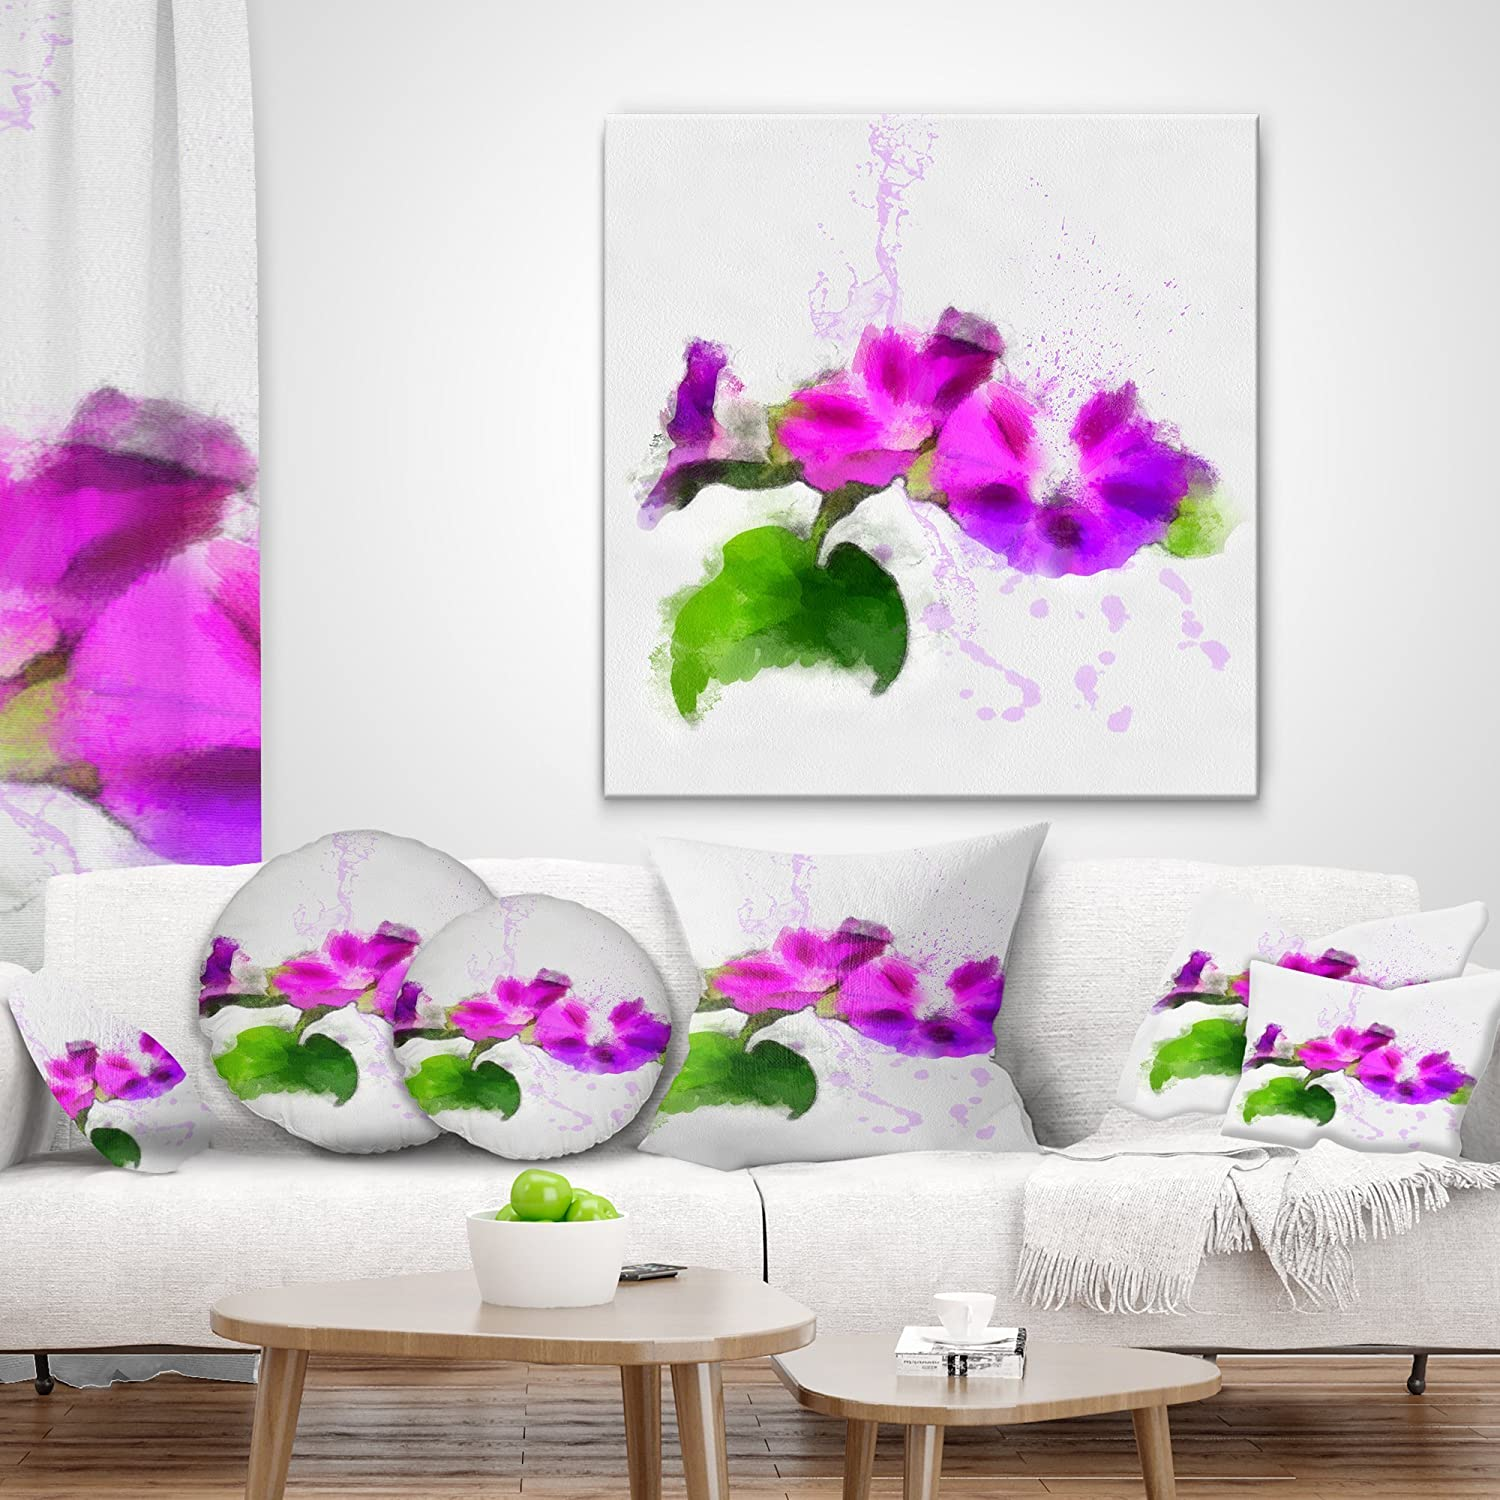 Sofa 18 x 18 Designart CU13733-18-18 Stem of Convolvulus Flower Drawing Floral Throw Cushion Pillow Cover for Living Room